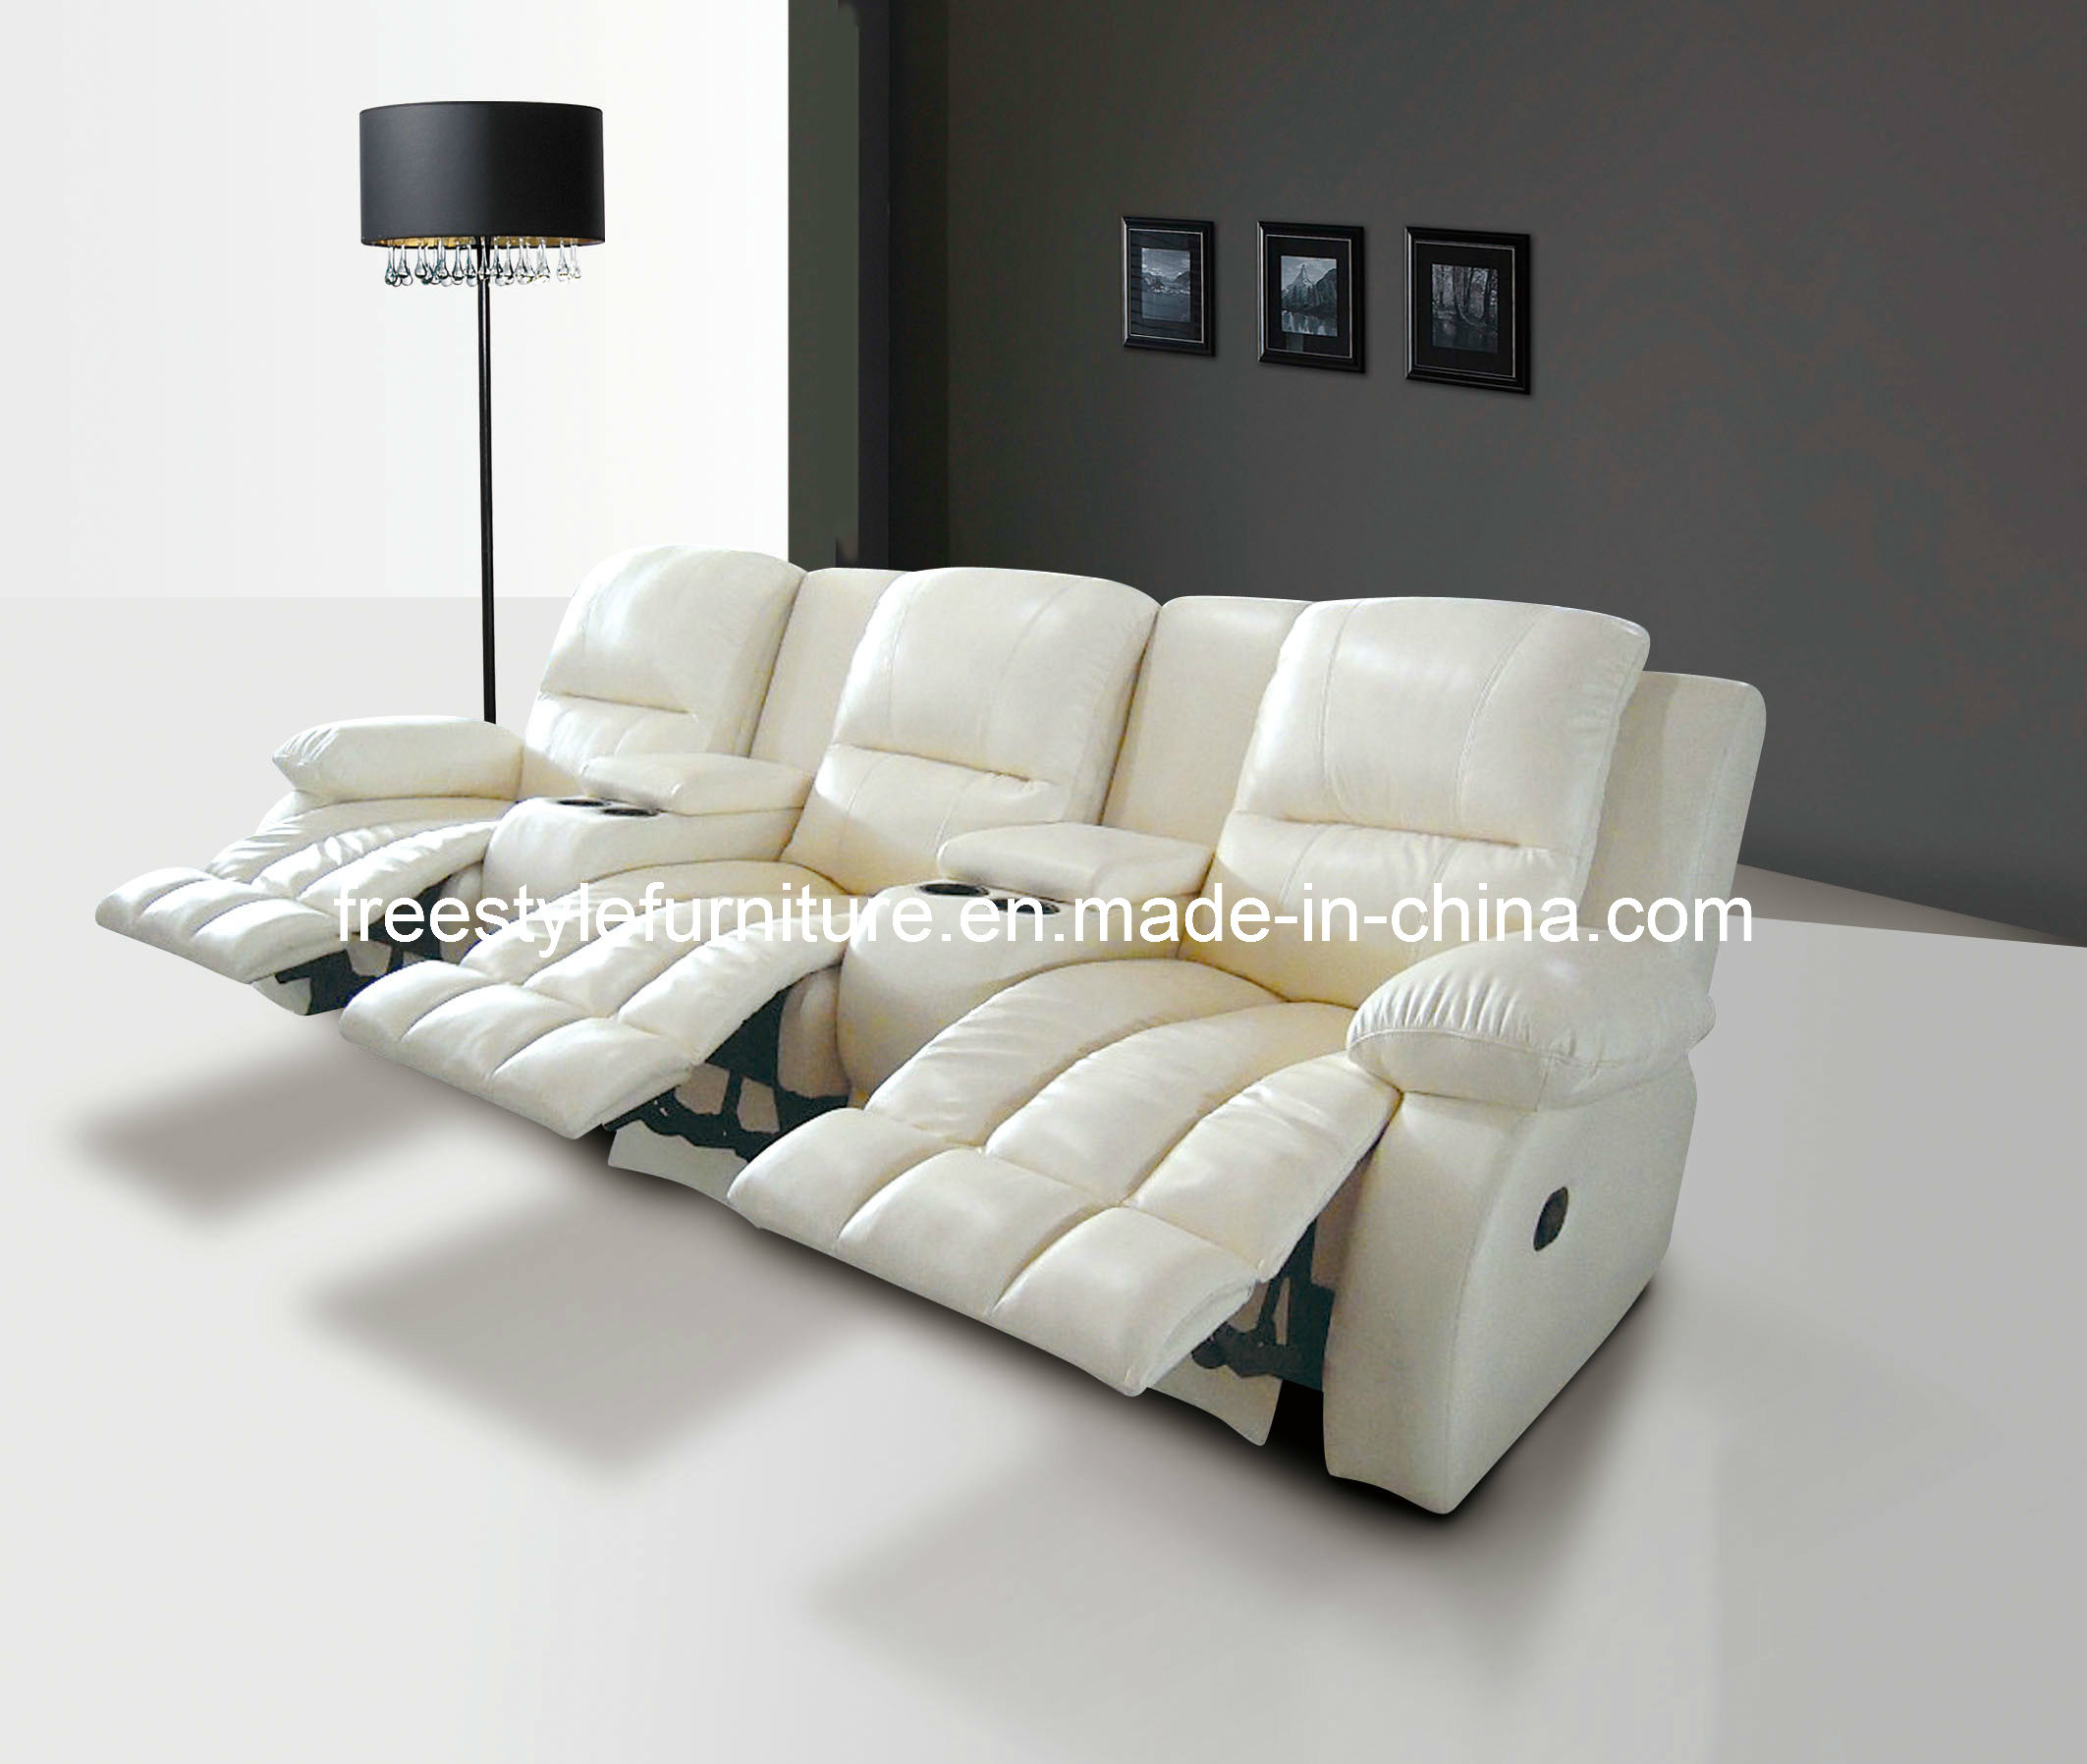 ... Best Made Sofa Brands Latest Designs Ideas Pictures ...